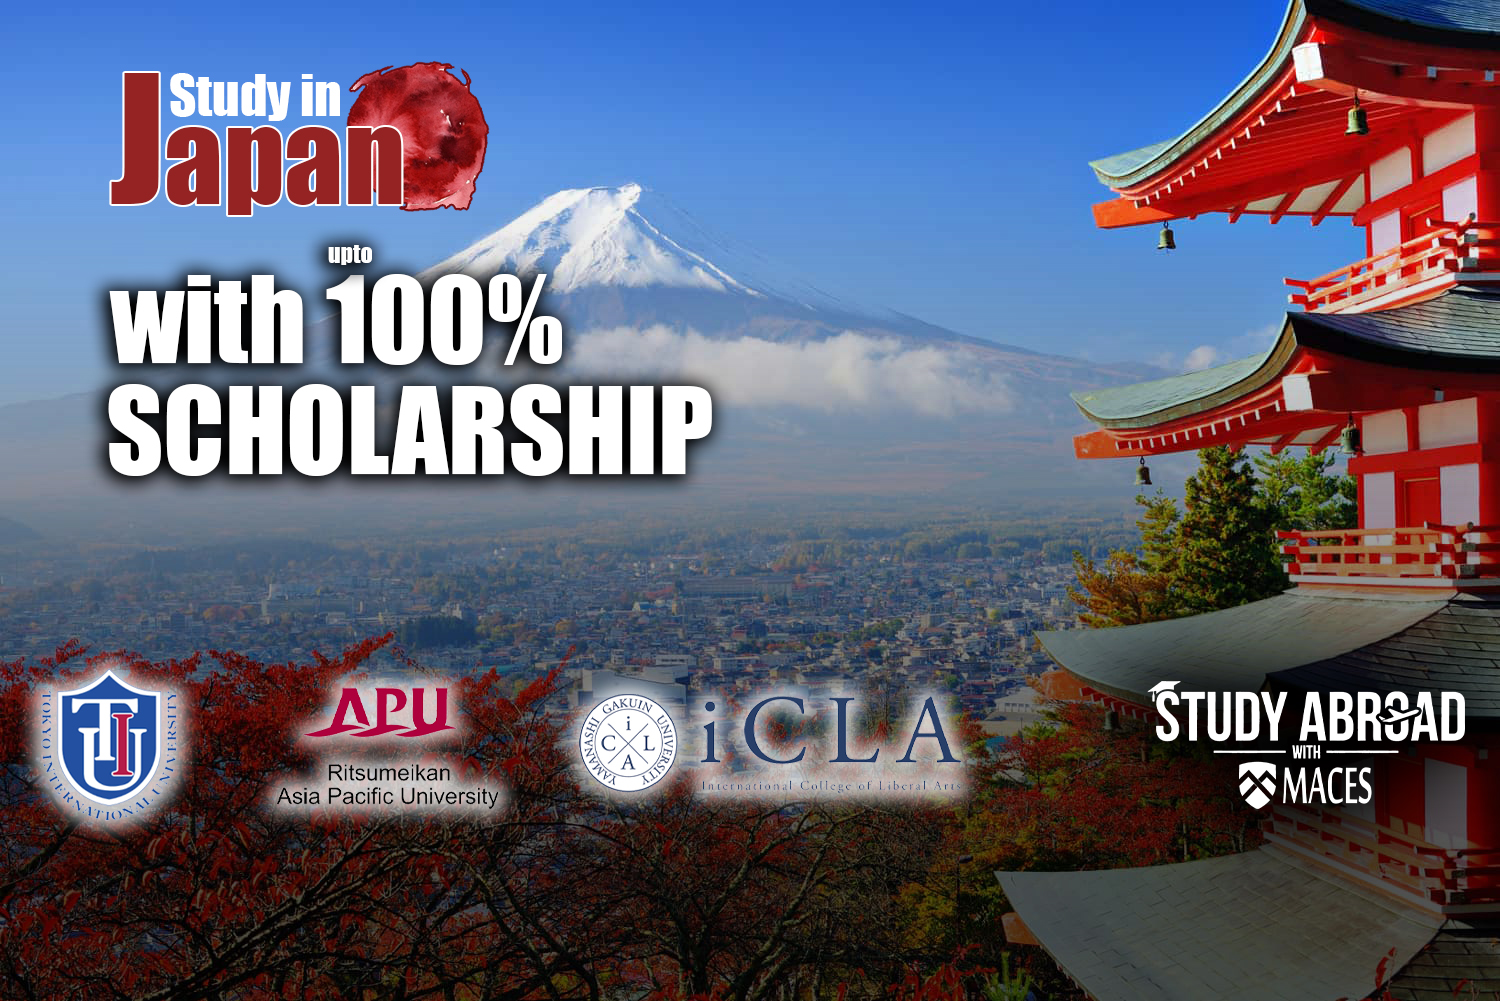 Study in Japan with Scholarship - Japan Application Week Study Abroad with MACES-Education Consultancy